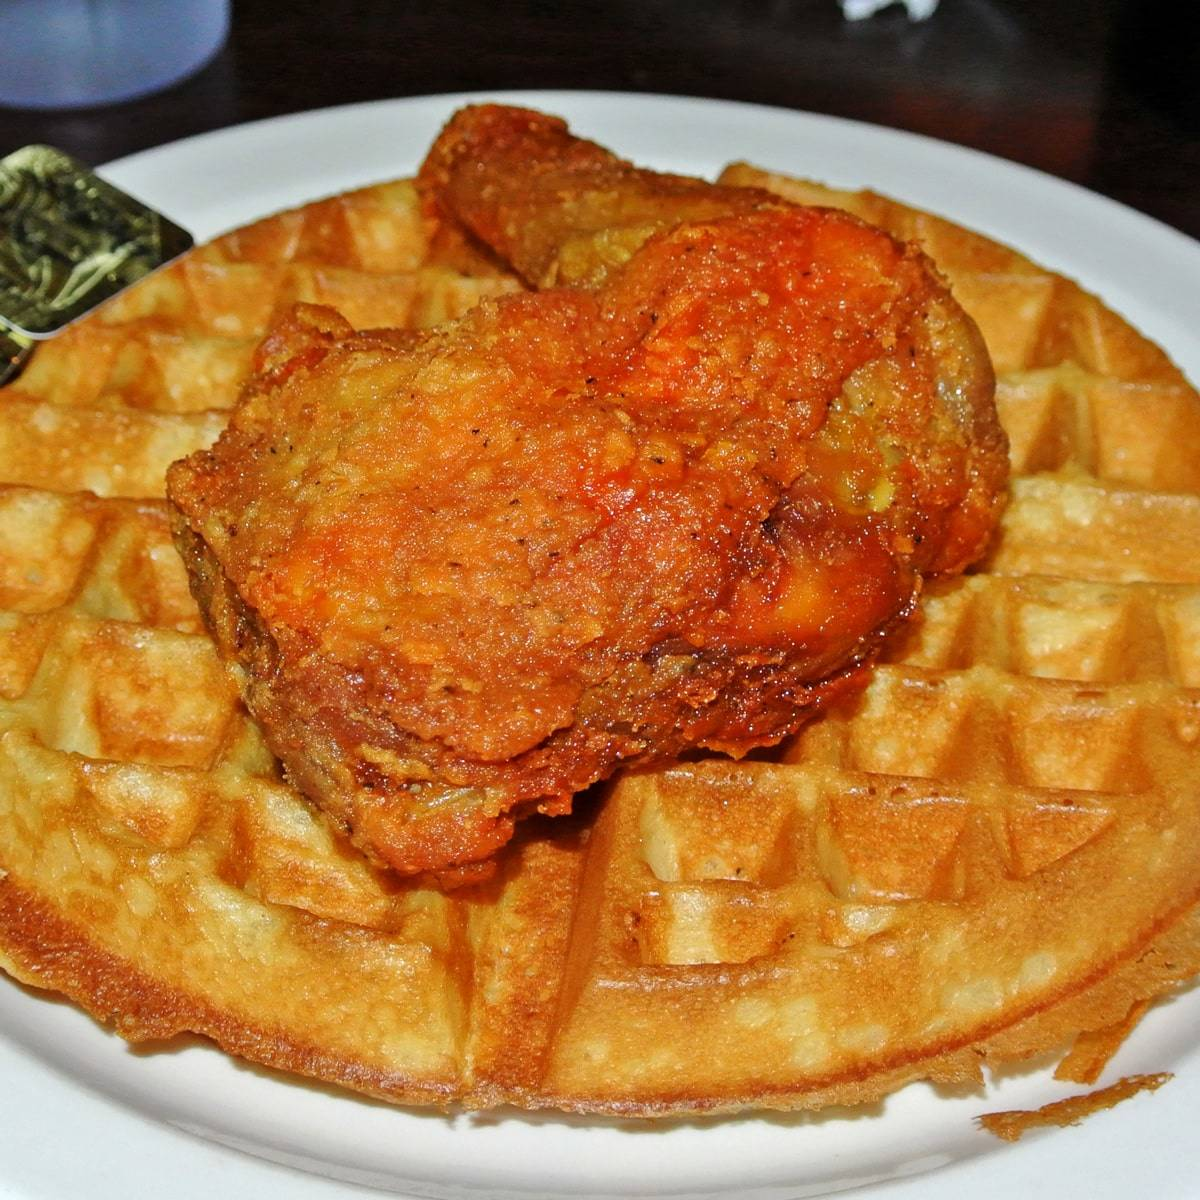 Chicken & Waffles and Authentic Home Cooked Soul Food at Amy Ruth's in Harlem